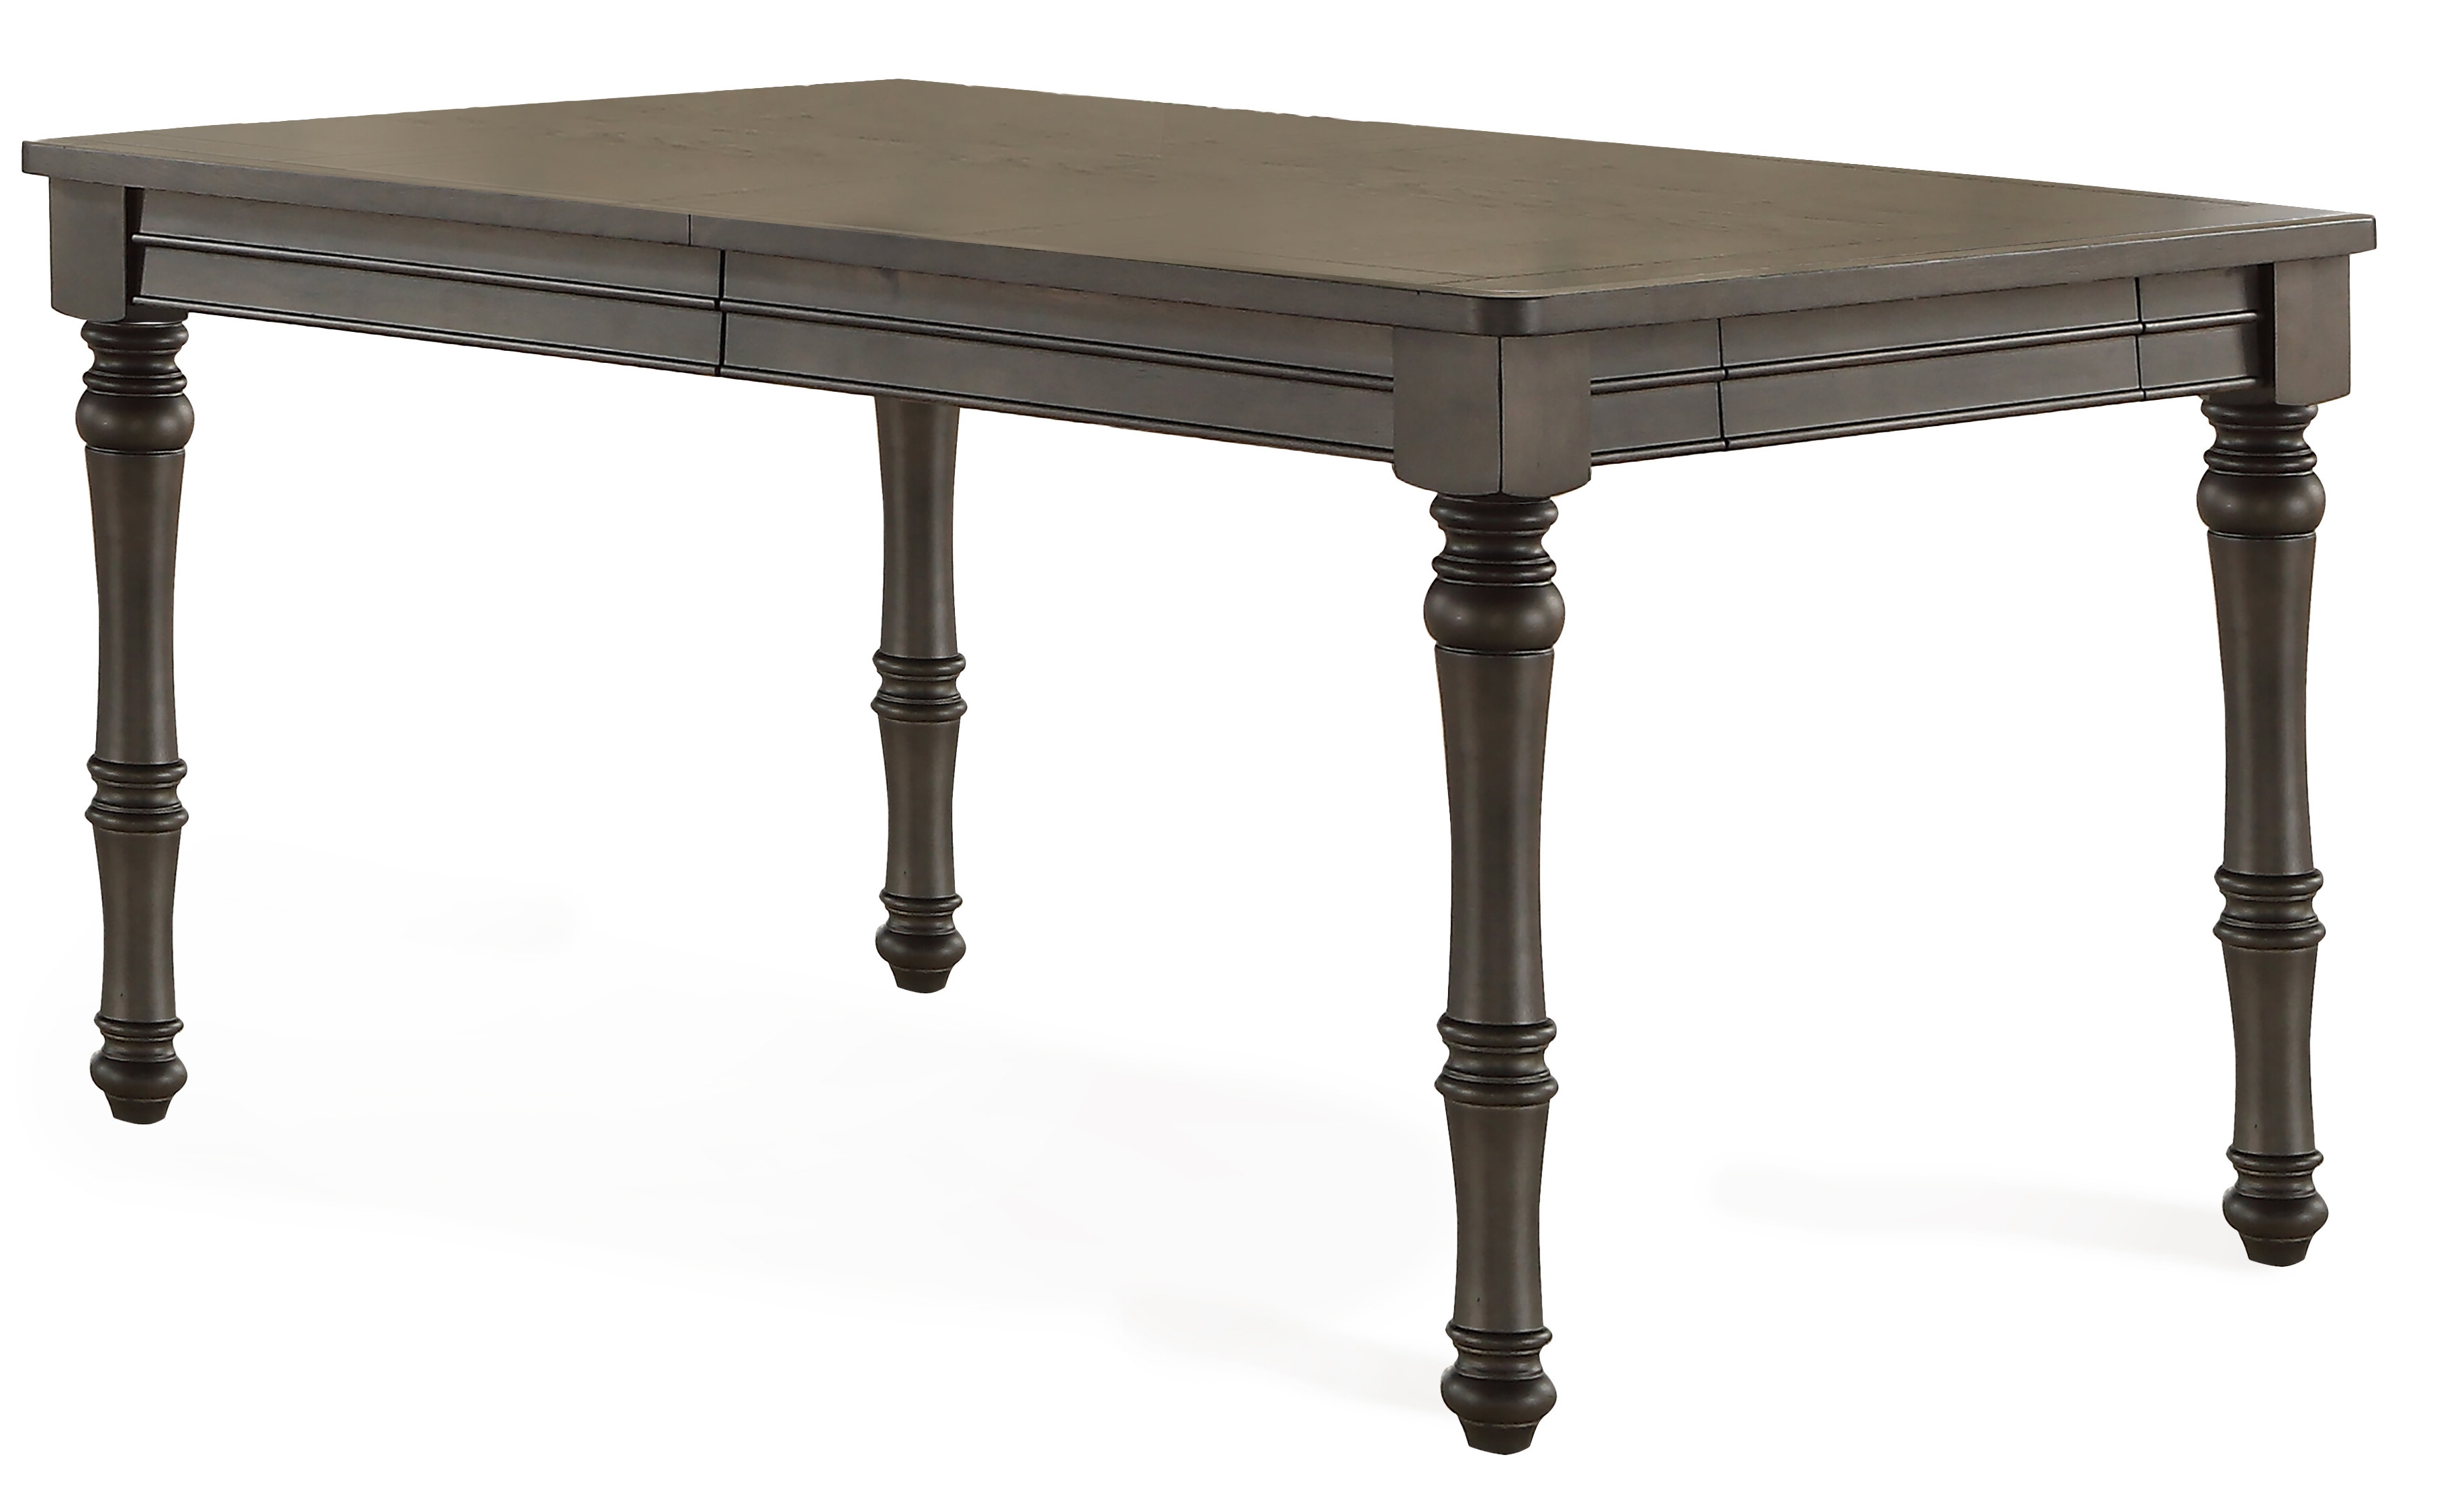 Linette 5 Piece Dining Table Sets Throughout Most Popular Canora Grey Sykes Extendable Dining Table (View 12 of 25)